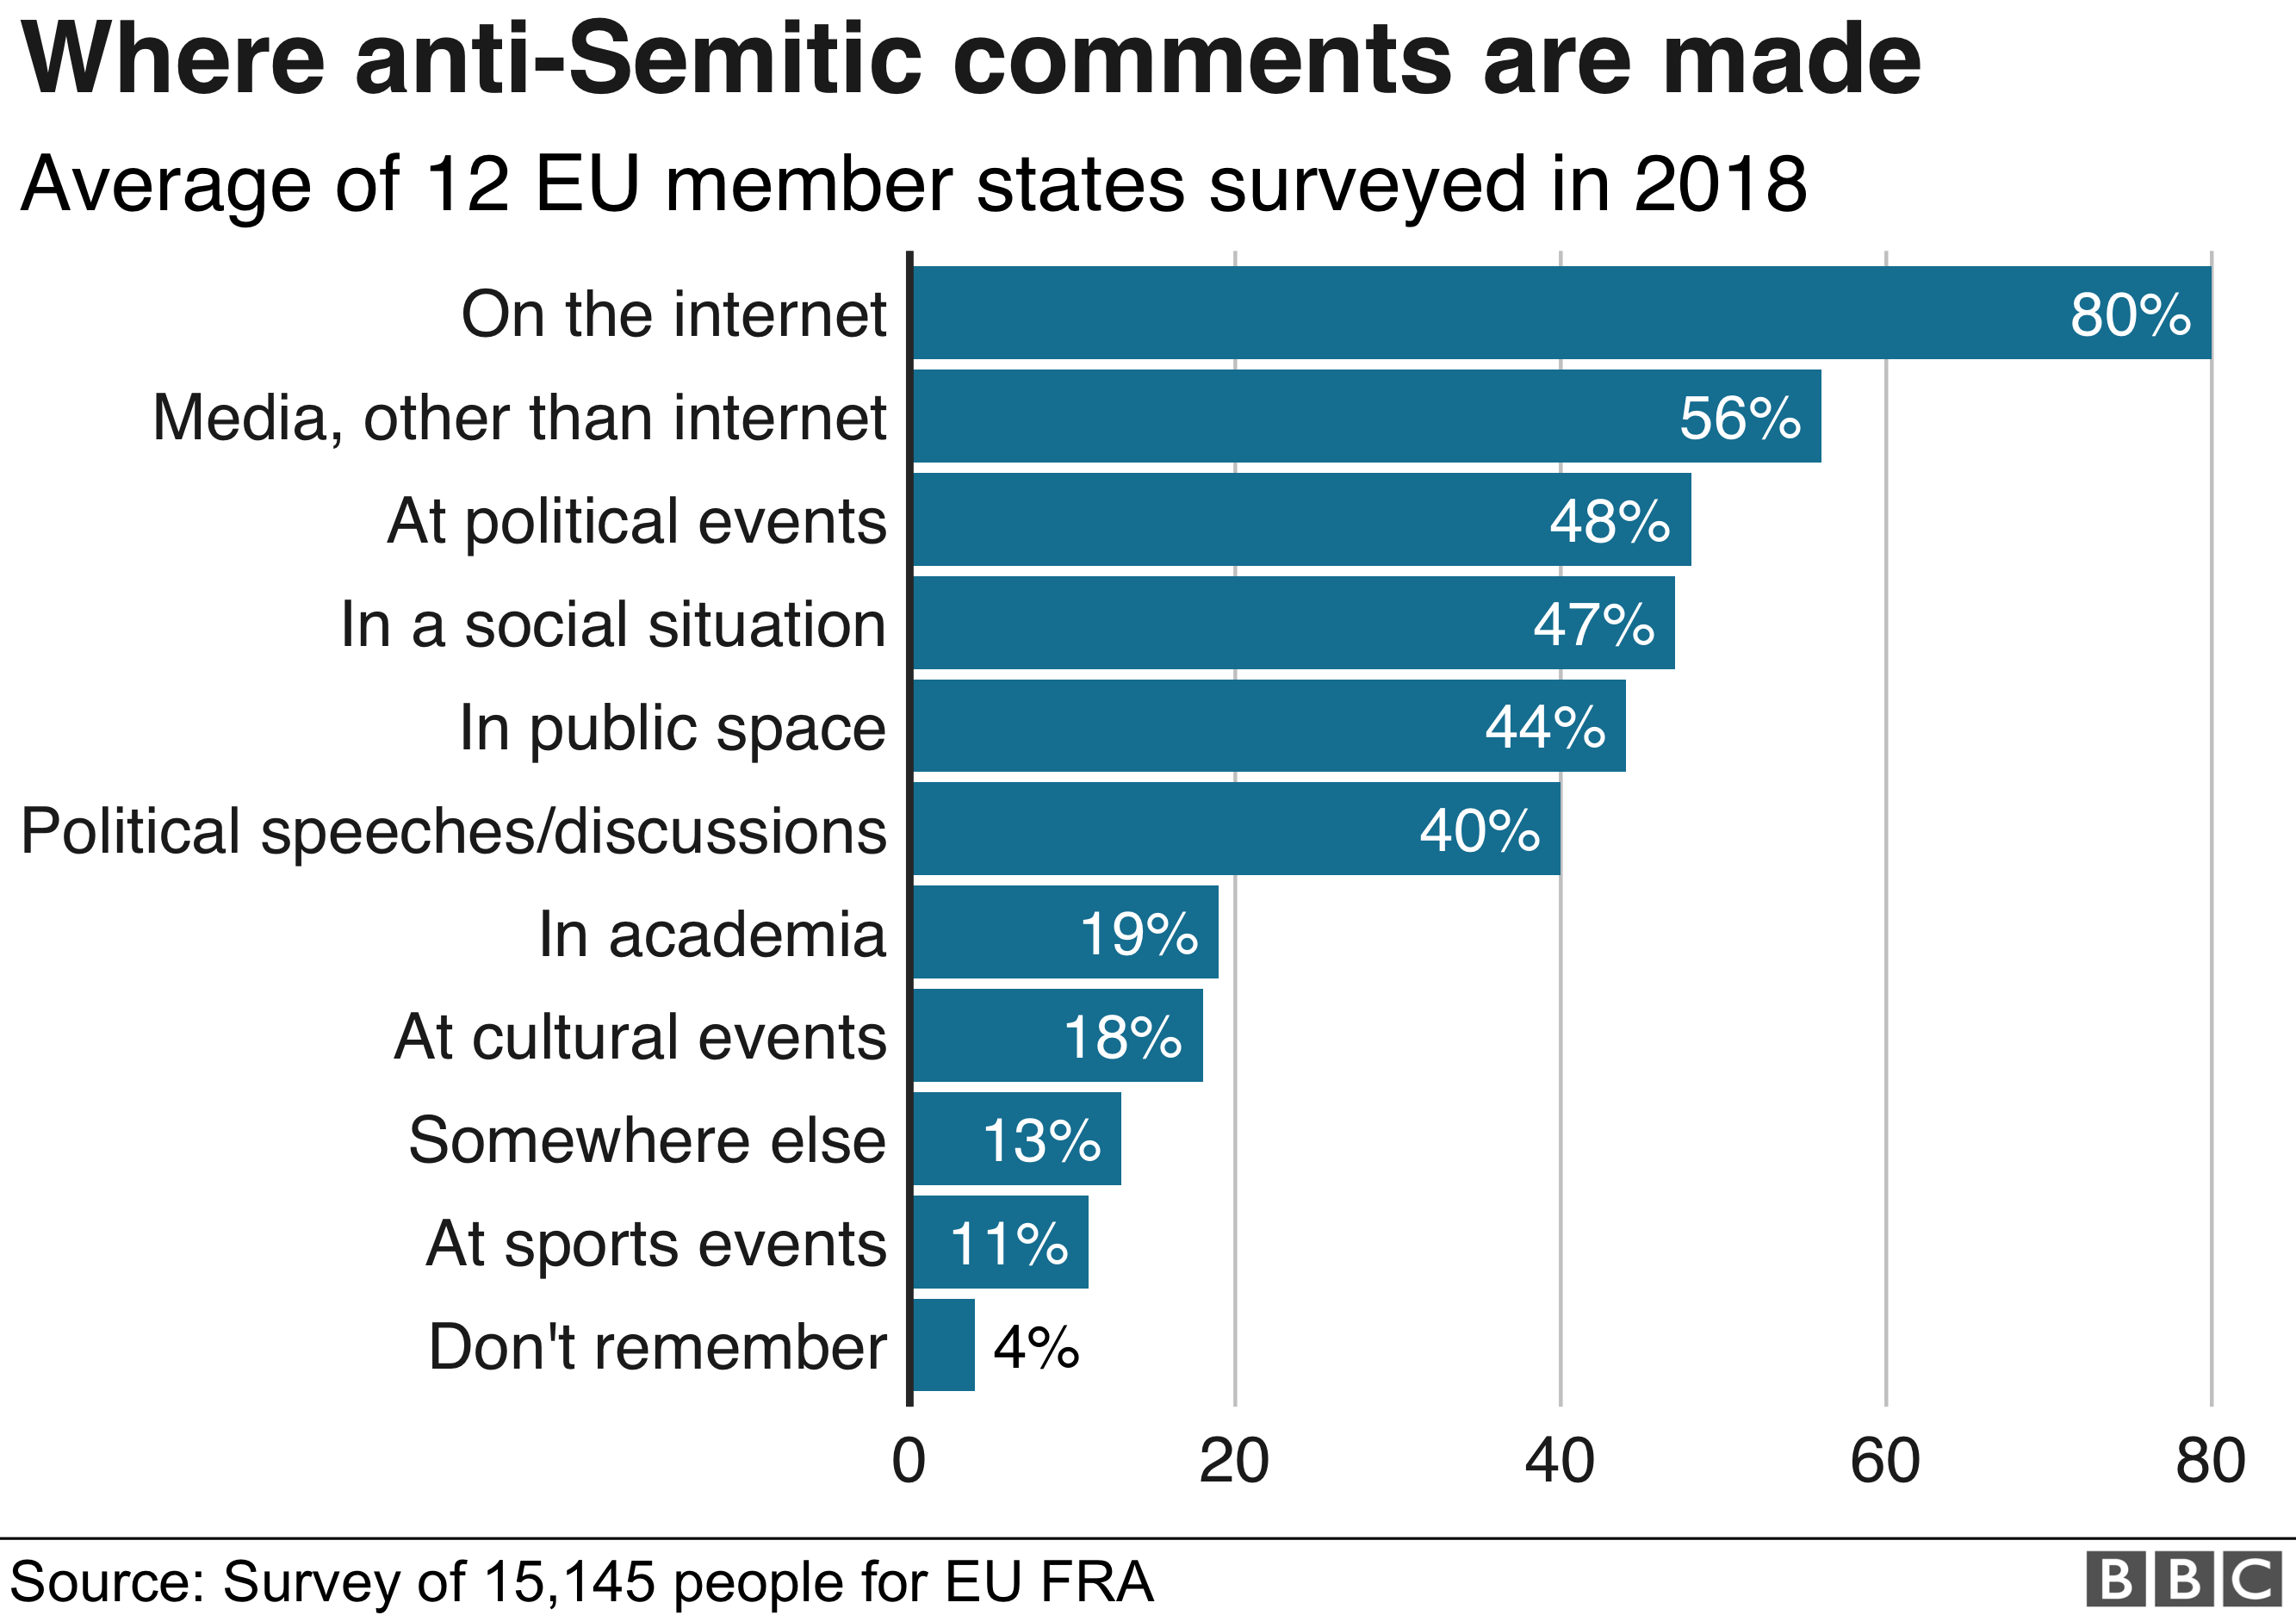 Graphic: Where anti-Semitic comments are made